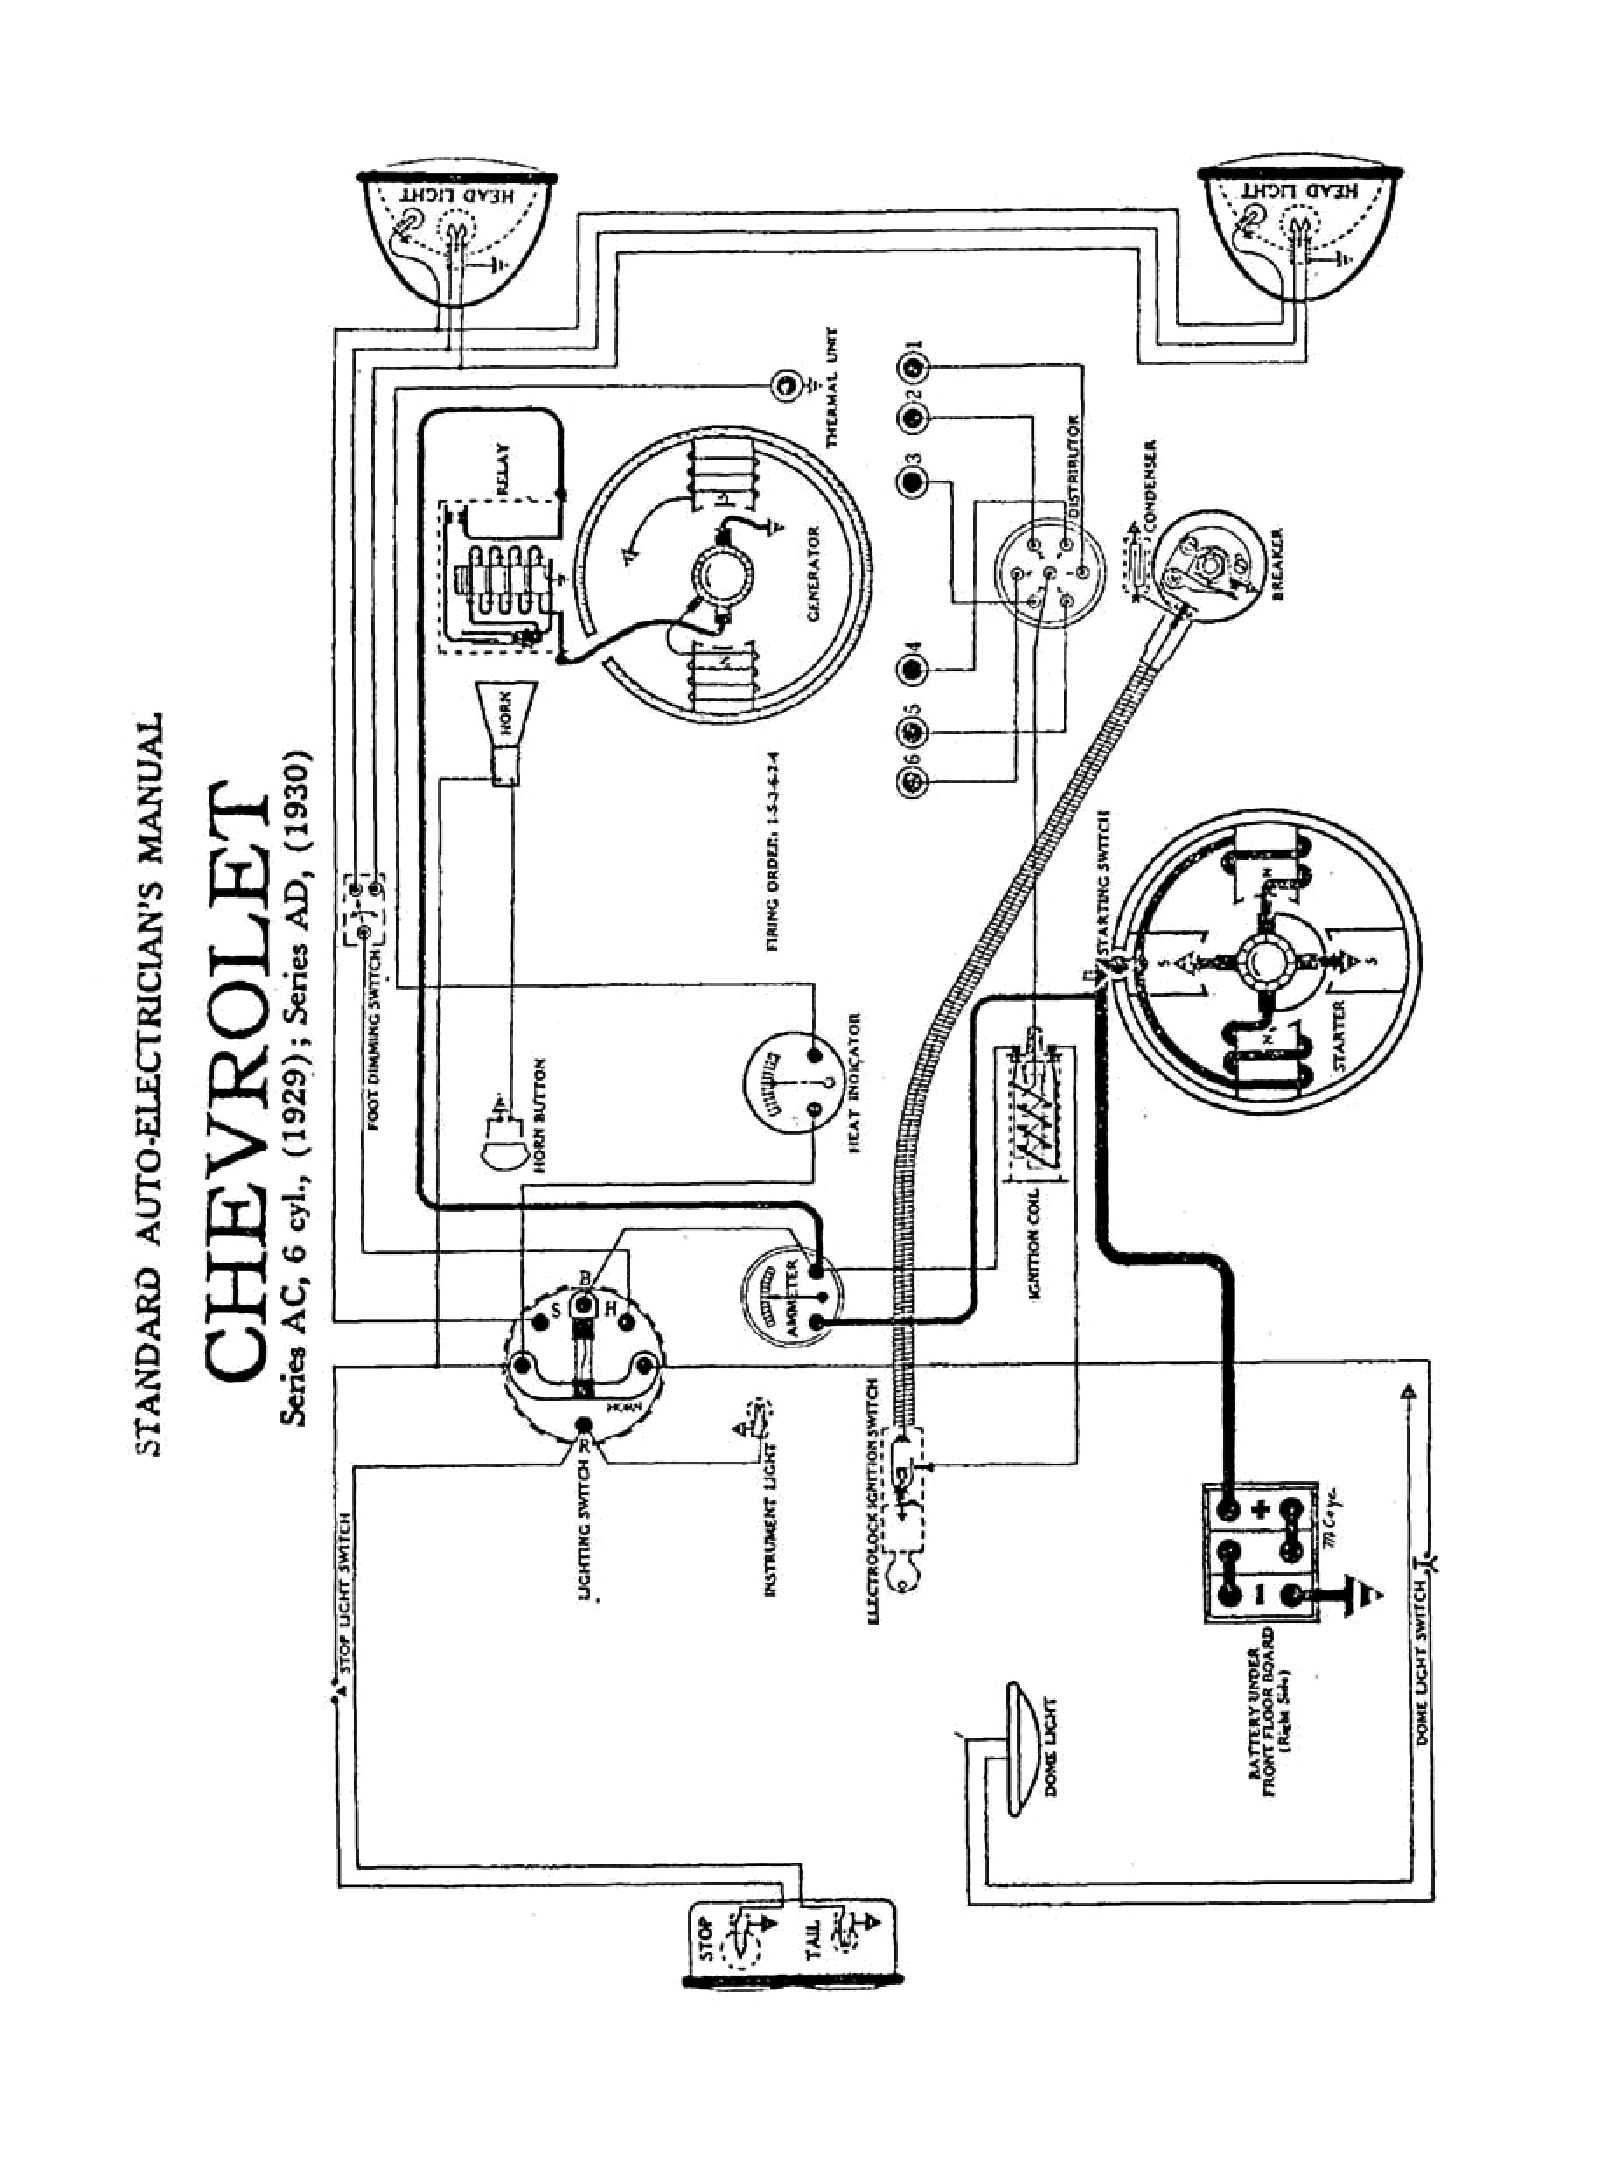 1950 Chevy Wiring Diagram Brakes. Chevy. Auto Wiring Diagram